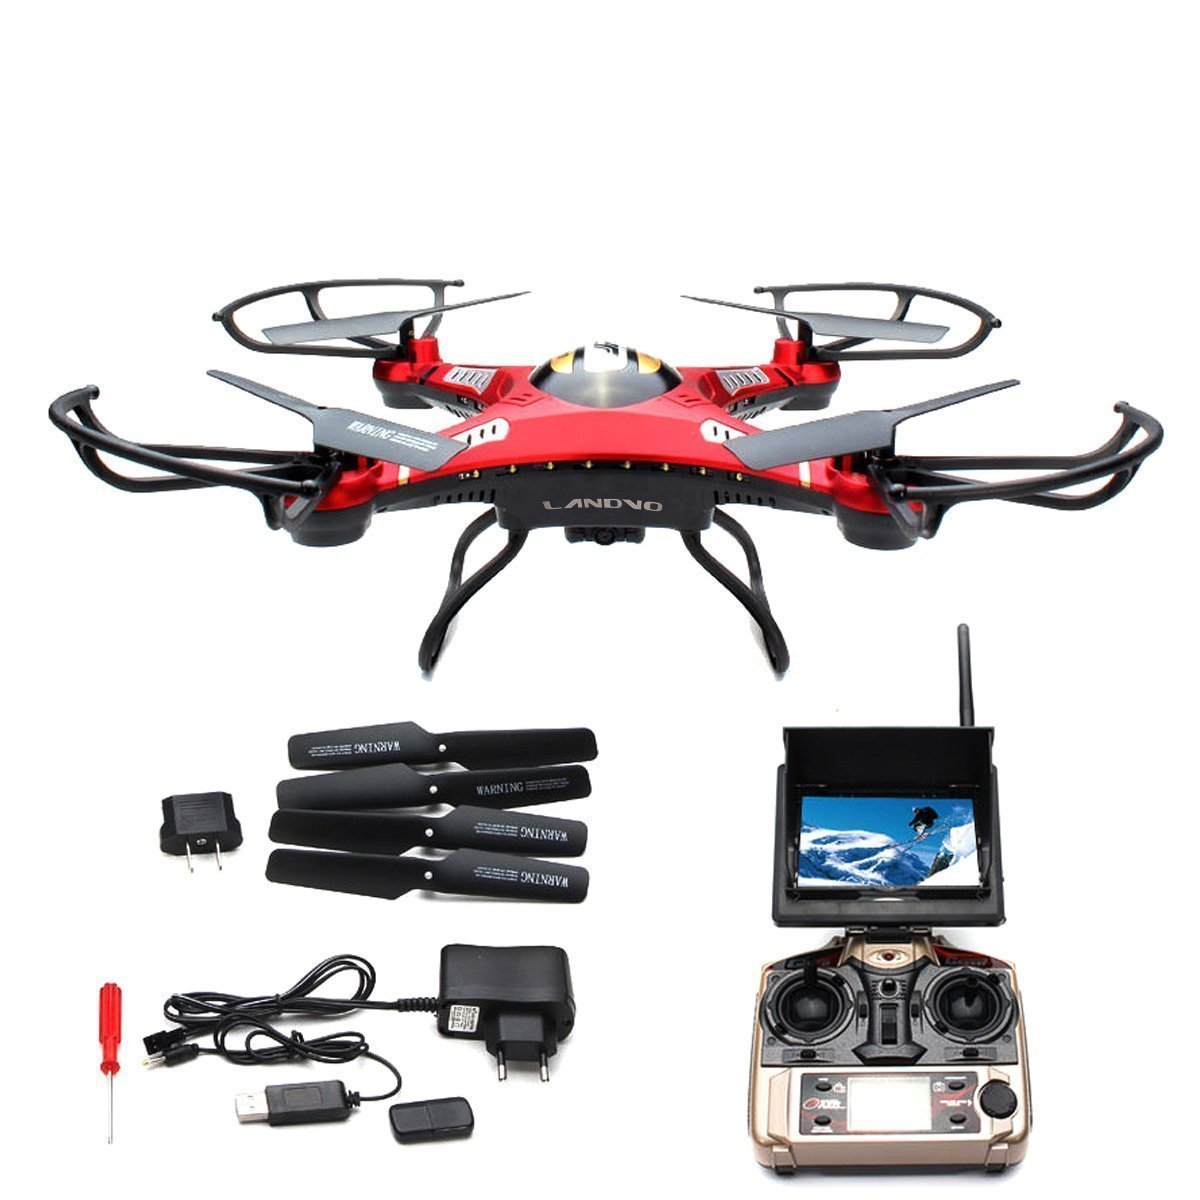 Awesome 16th Birthday Gift Ideas For Boys Teenage Guys Are Never Too Old RC Toys Remote Controlled Just Get Bigger And More Intricate As A Young